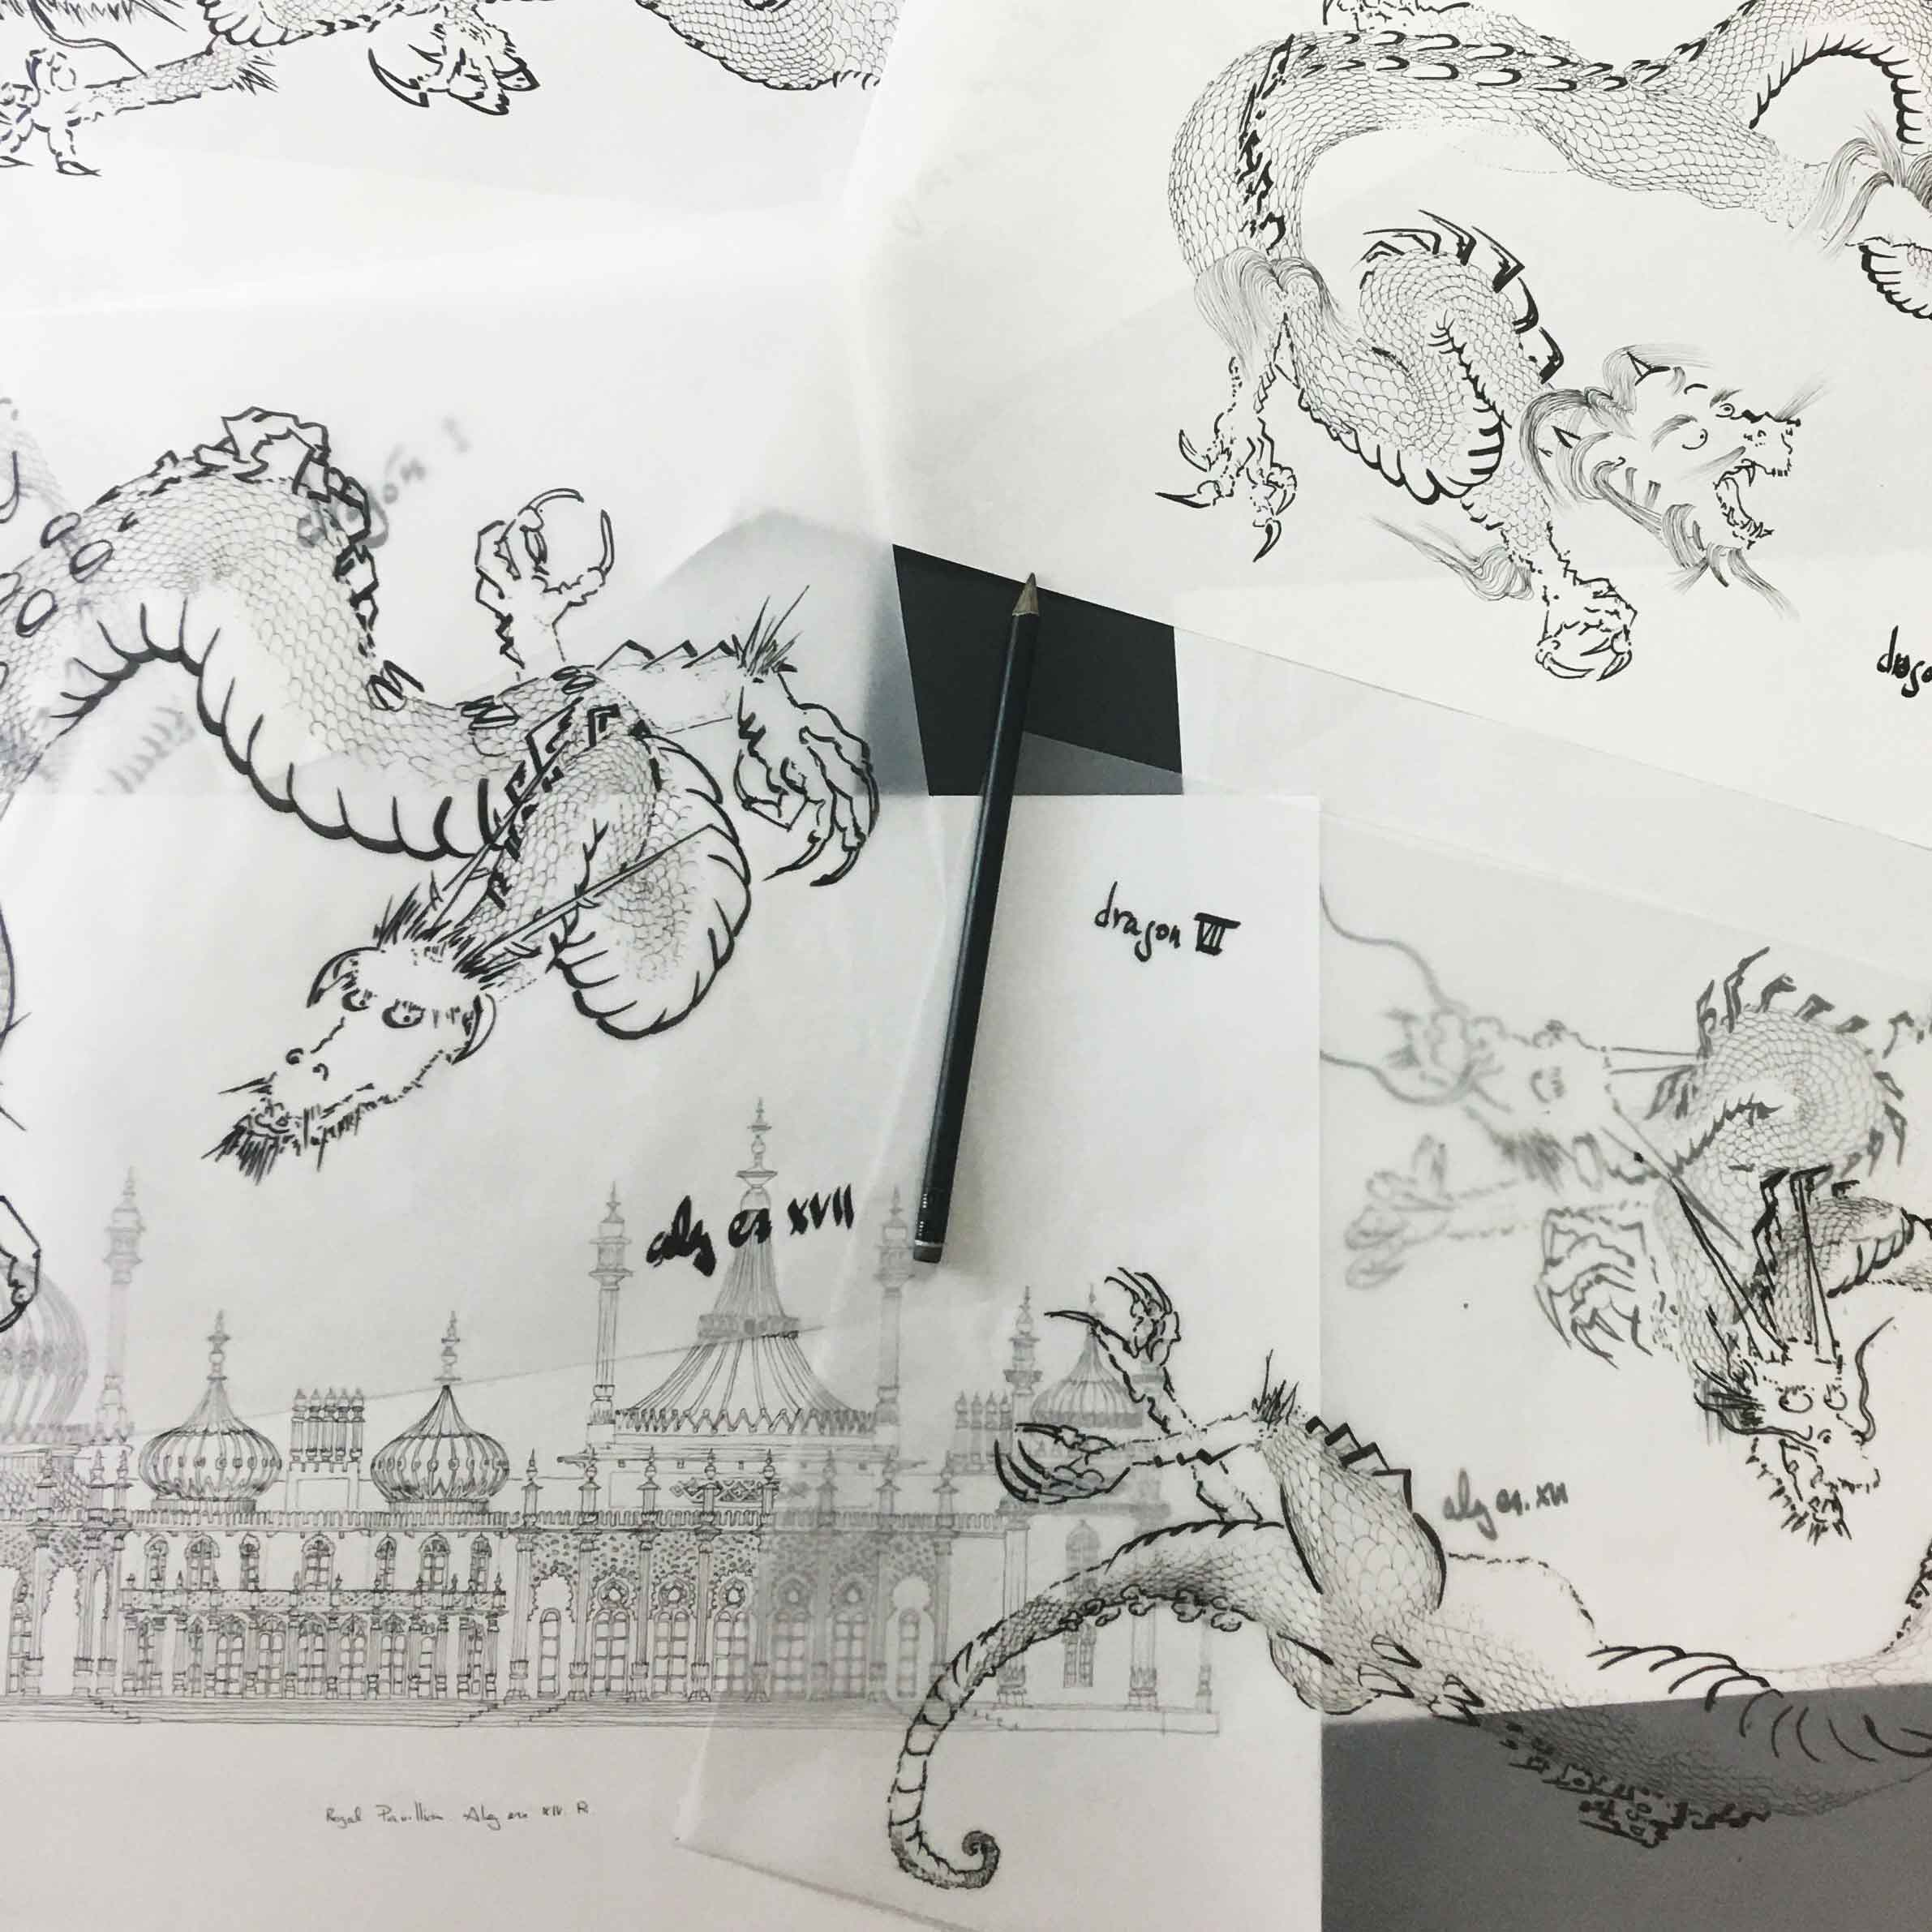 base drawing for print named Chinoiseriez by artist alej ez deptics dragons flying over the Royal Pavilion in Brighton